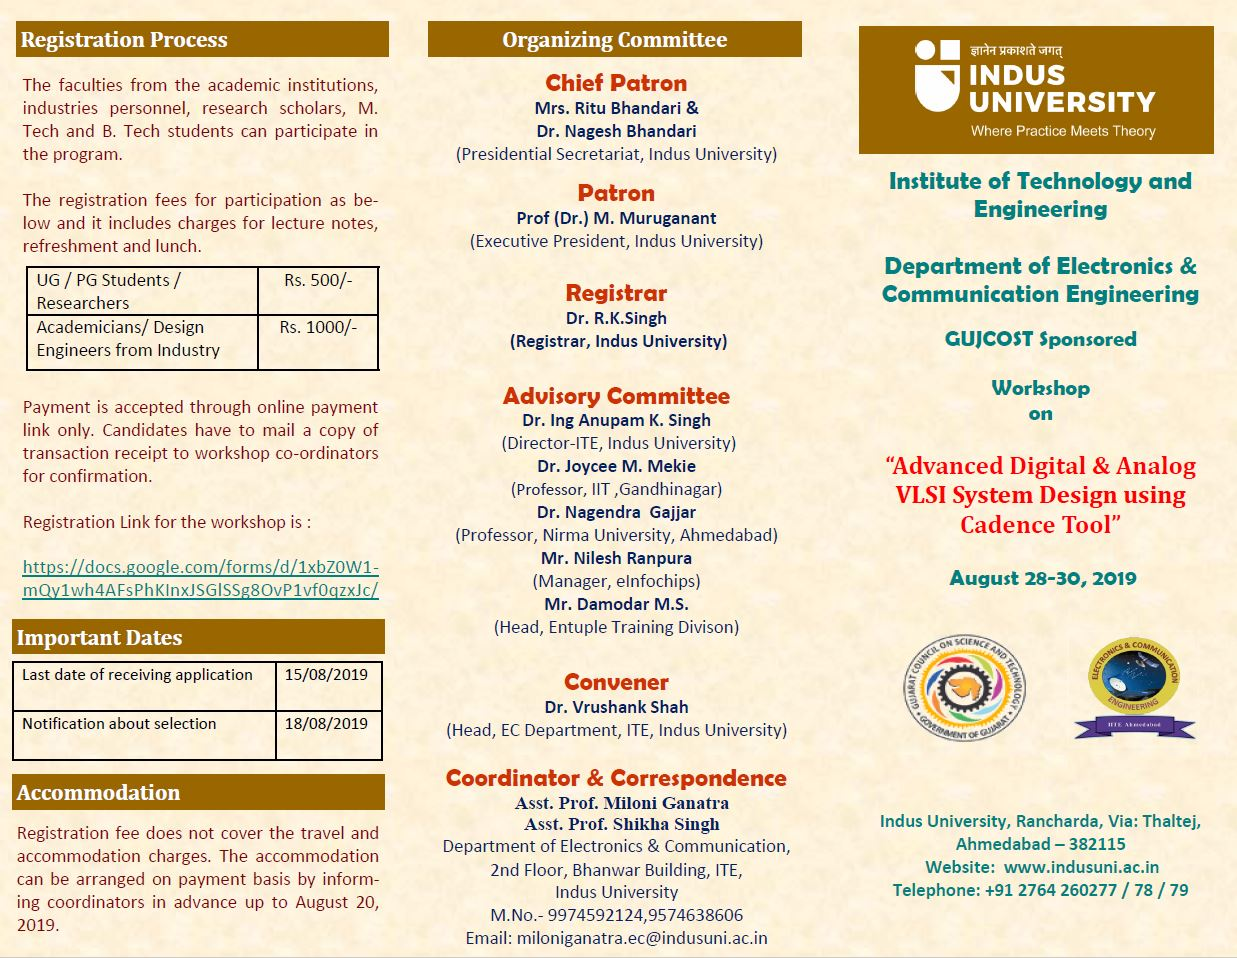 Department of Electronics & Communication Engineering - Indus University